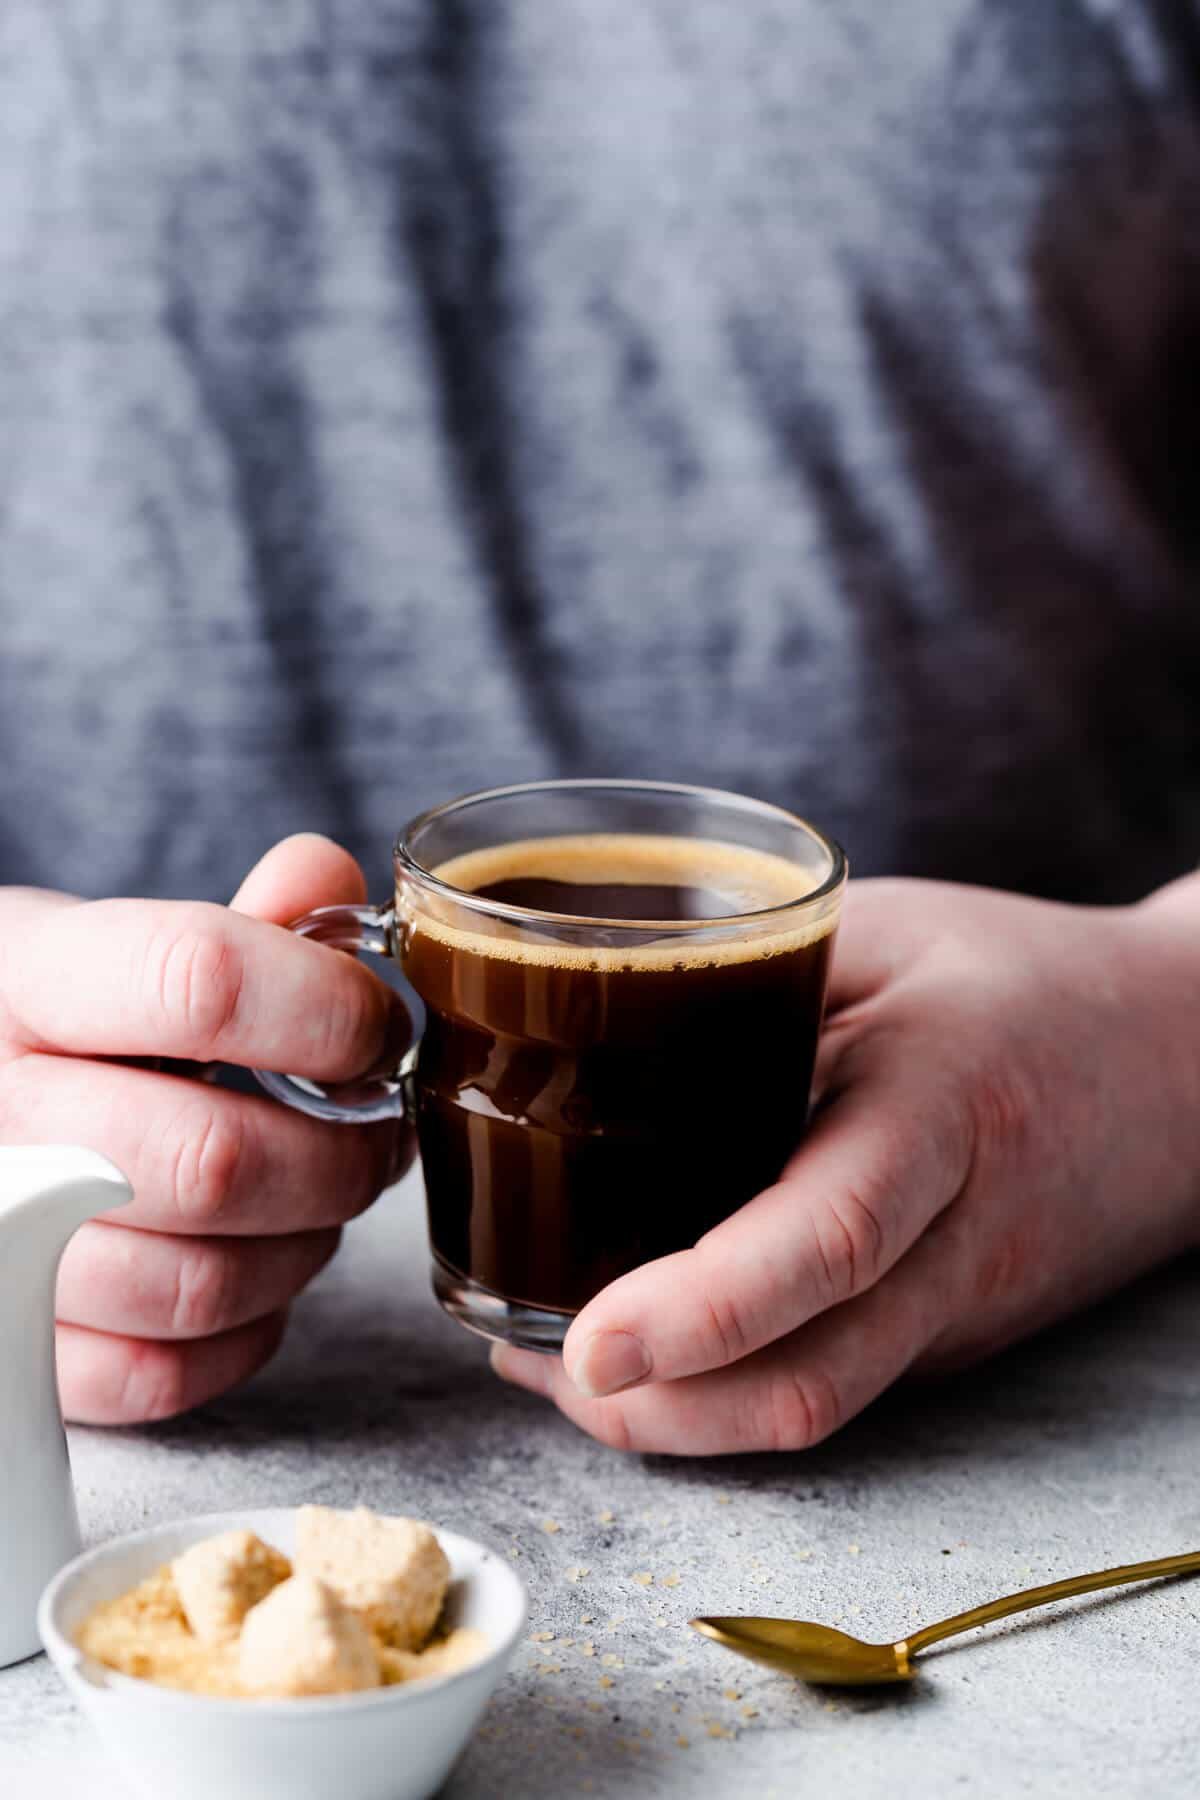 side close up of a person holding a cup of coffee